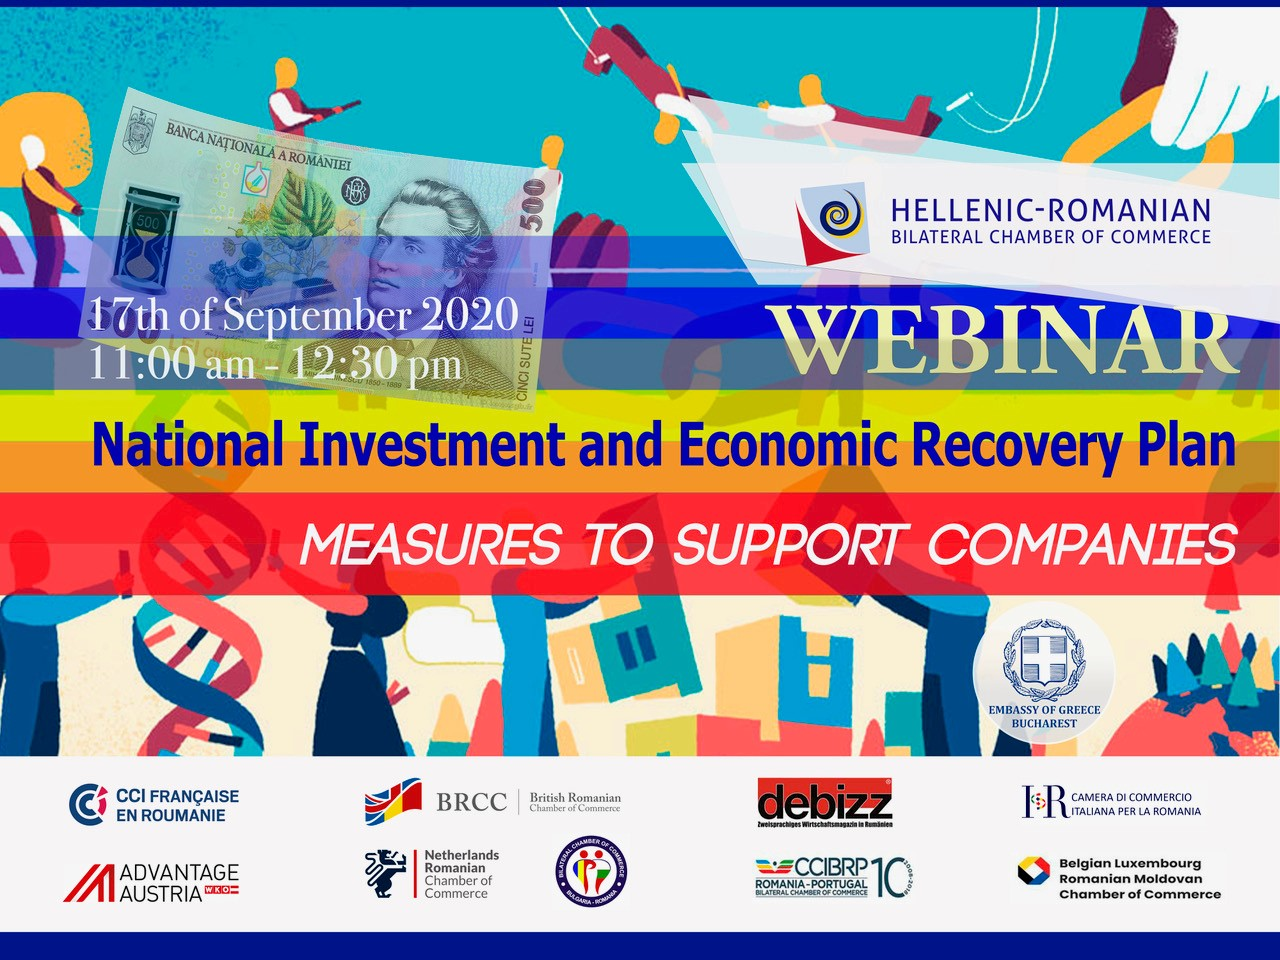 National Investment and Economic Recovery